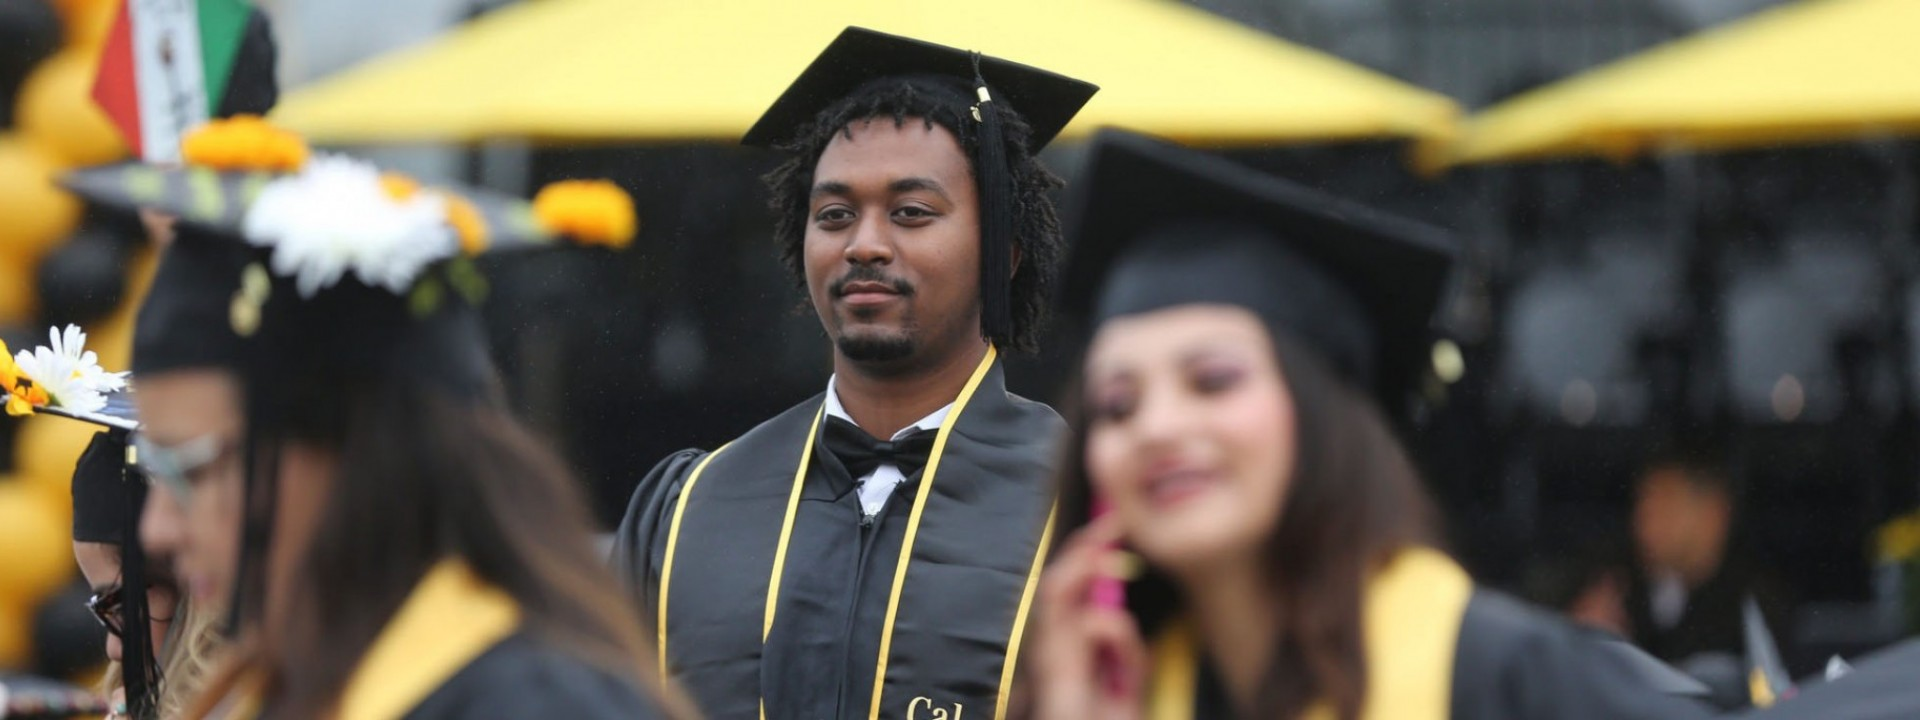 Image of a Black male student in Commencement regalia with a stoic expression on his face.